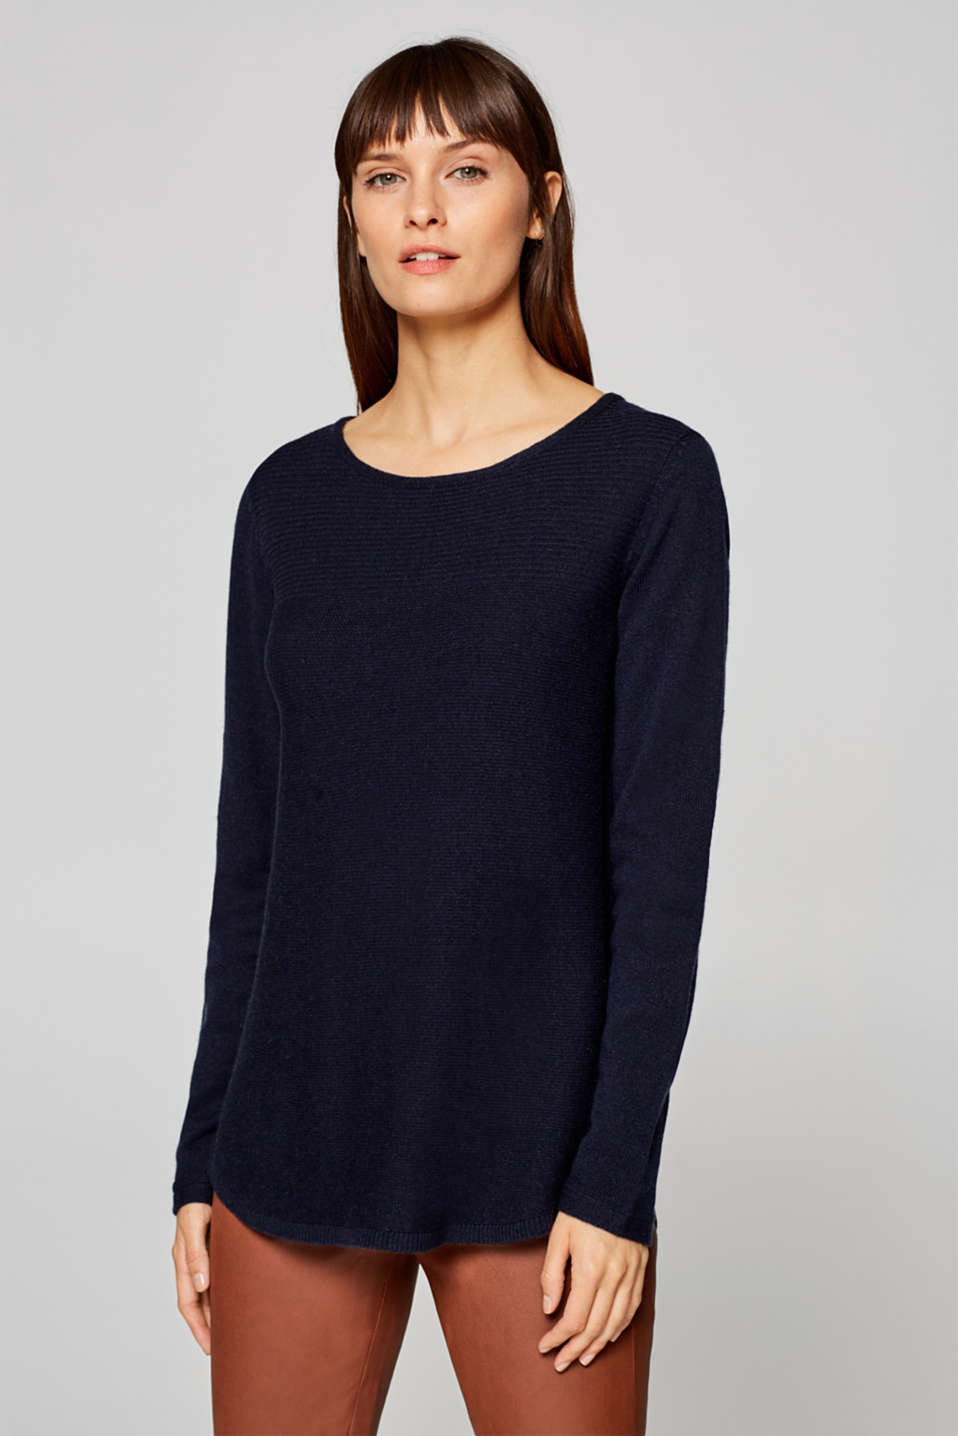 Esprit - Made of wool/cashmere: Textured jumper